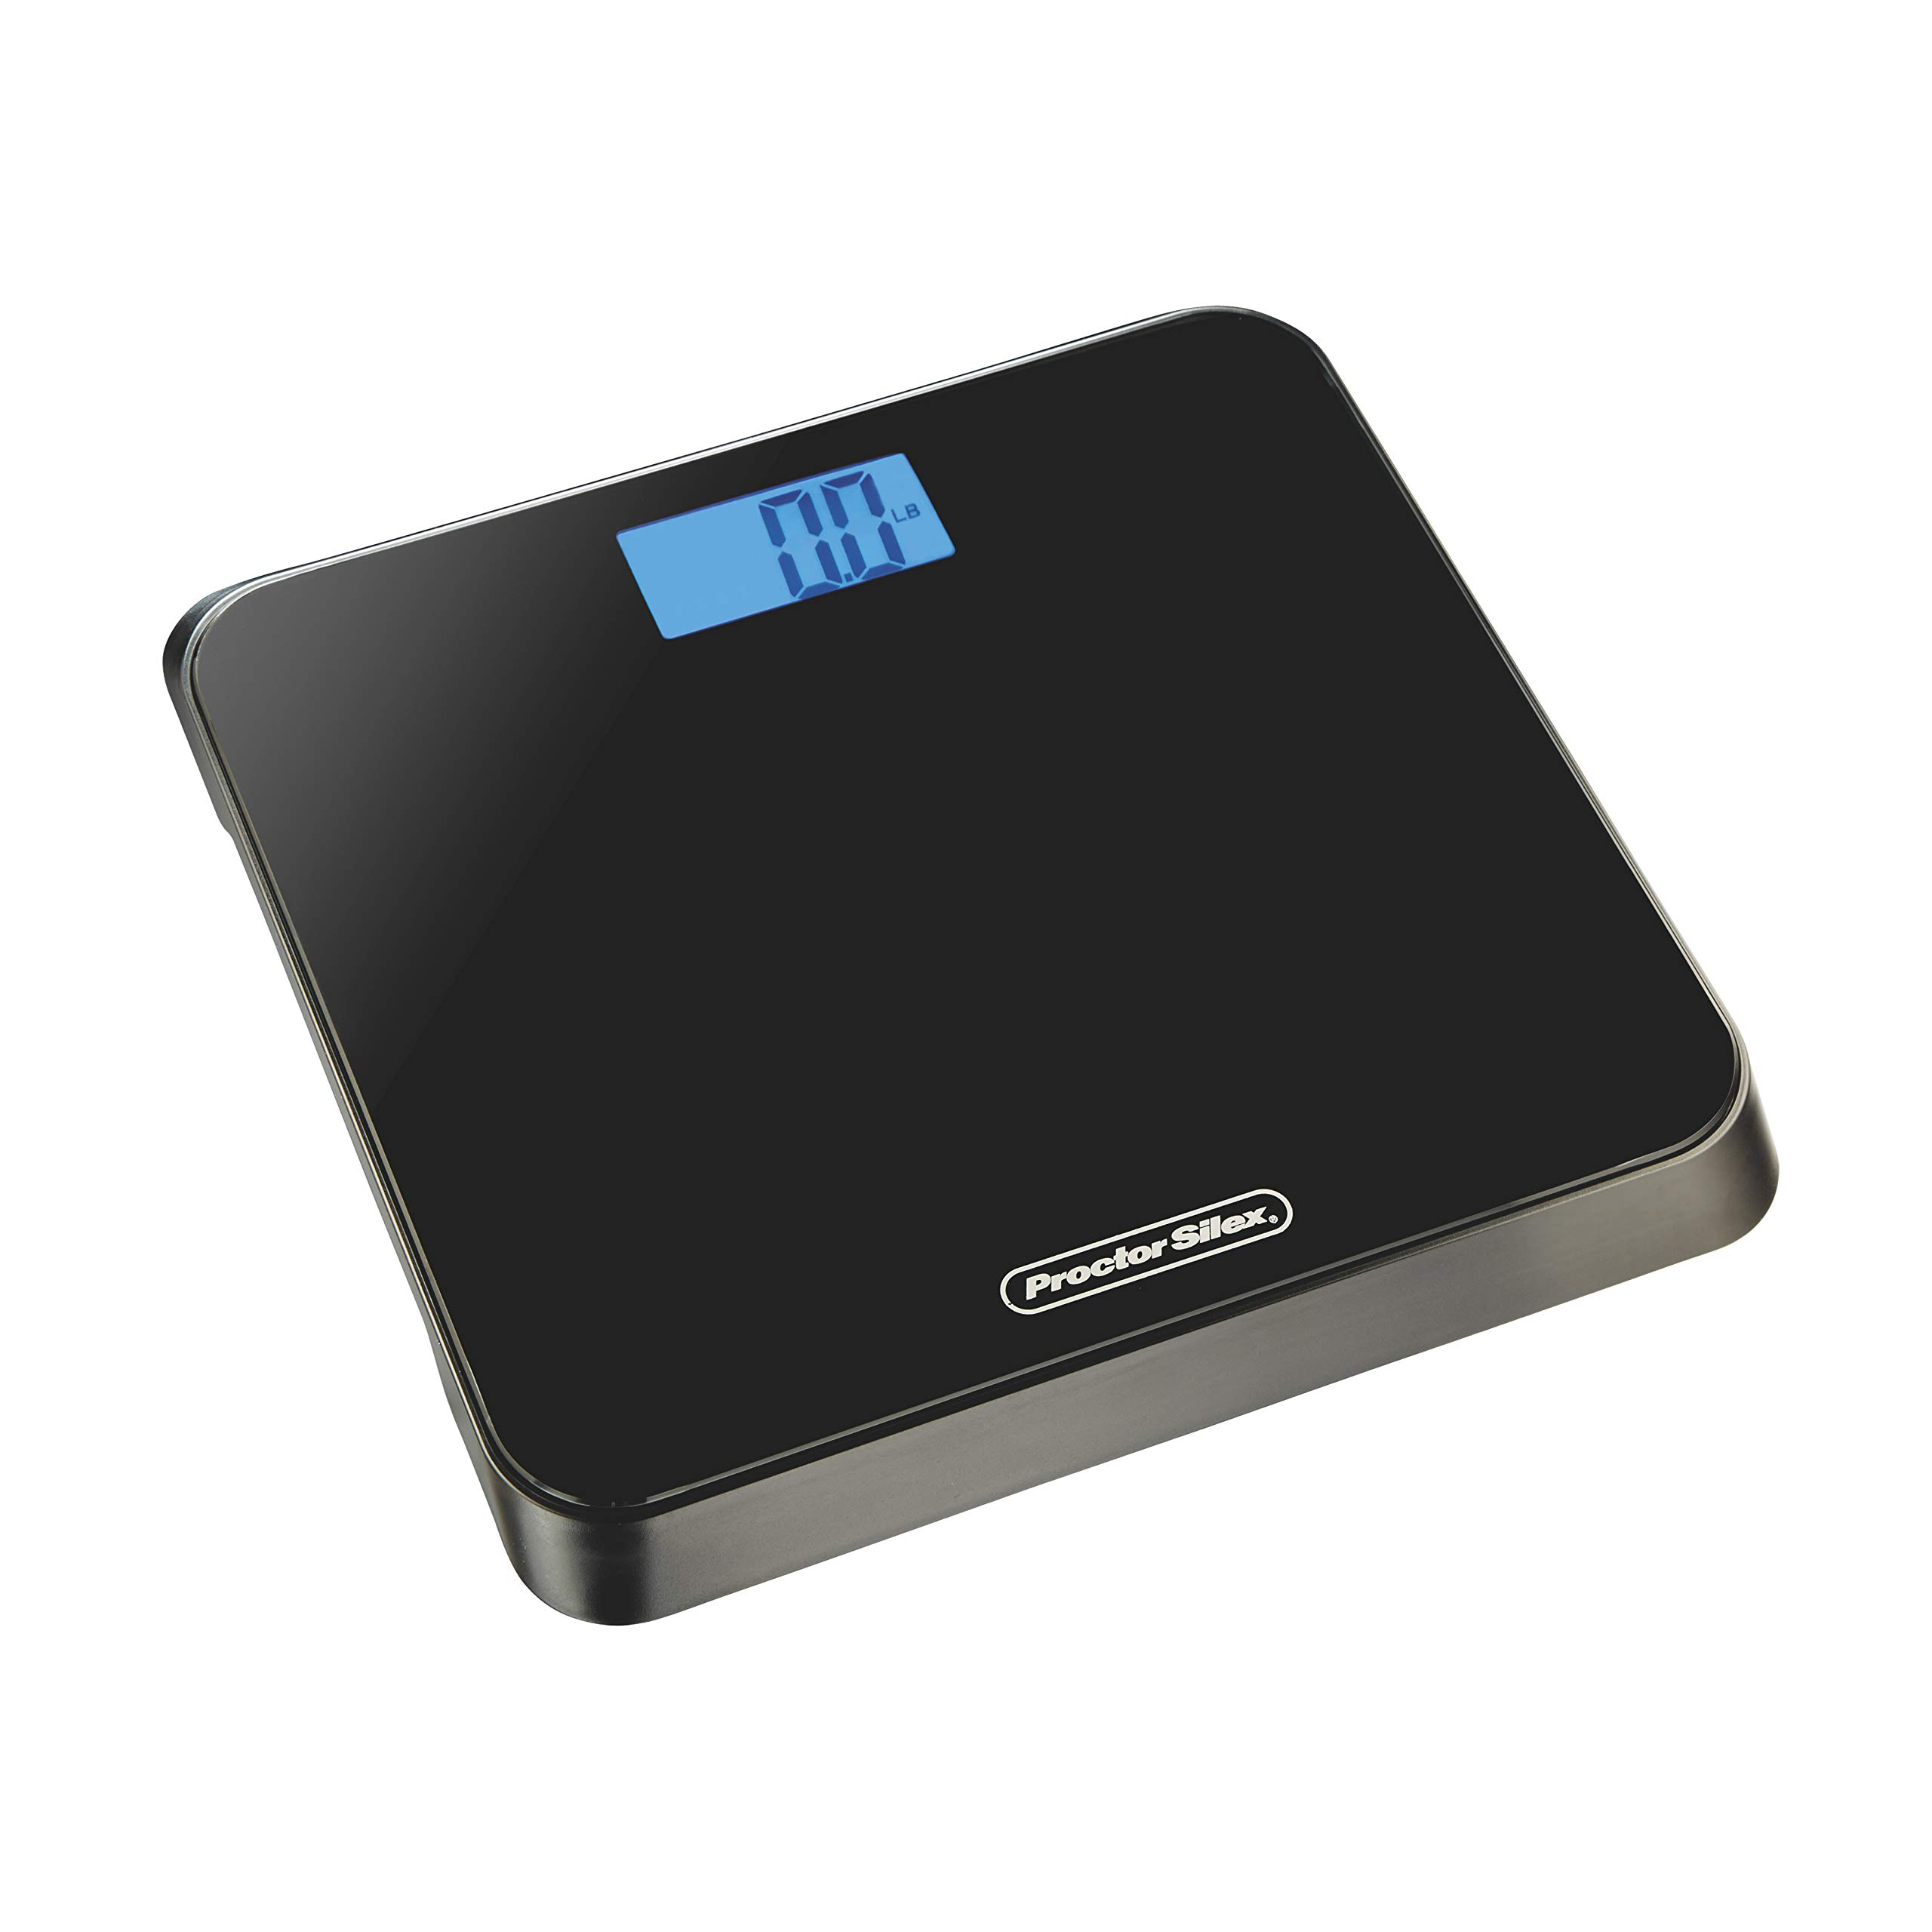 Proctor Silex 86550 Digital Body Weight Bathroom Scale, Step-on Technology, Large LCD Display, Black by Proctor Silex